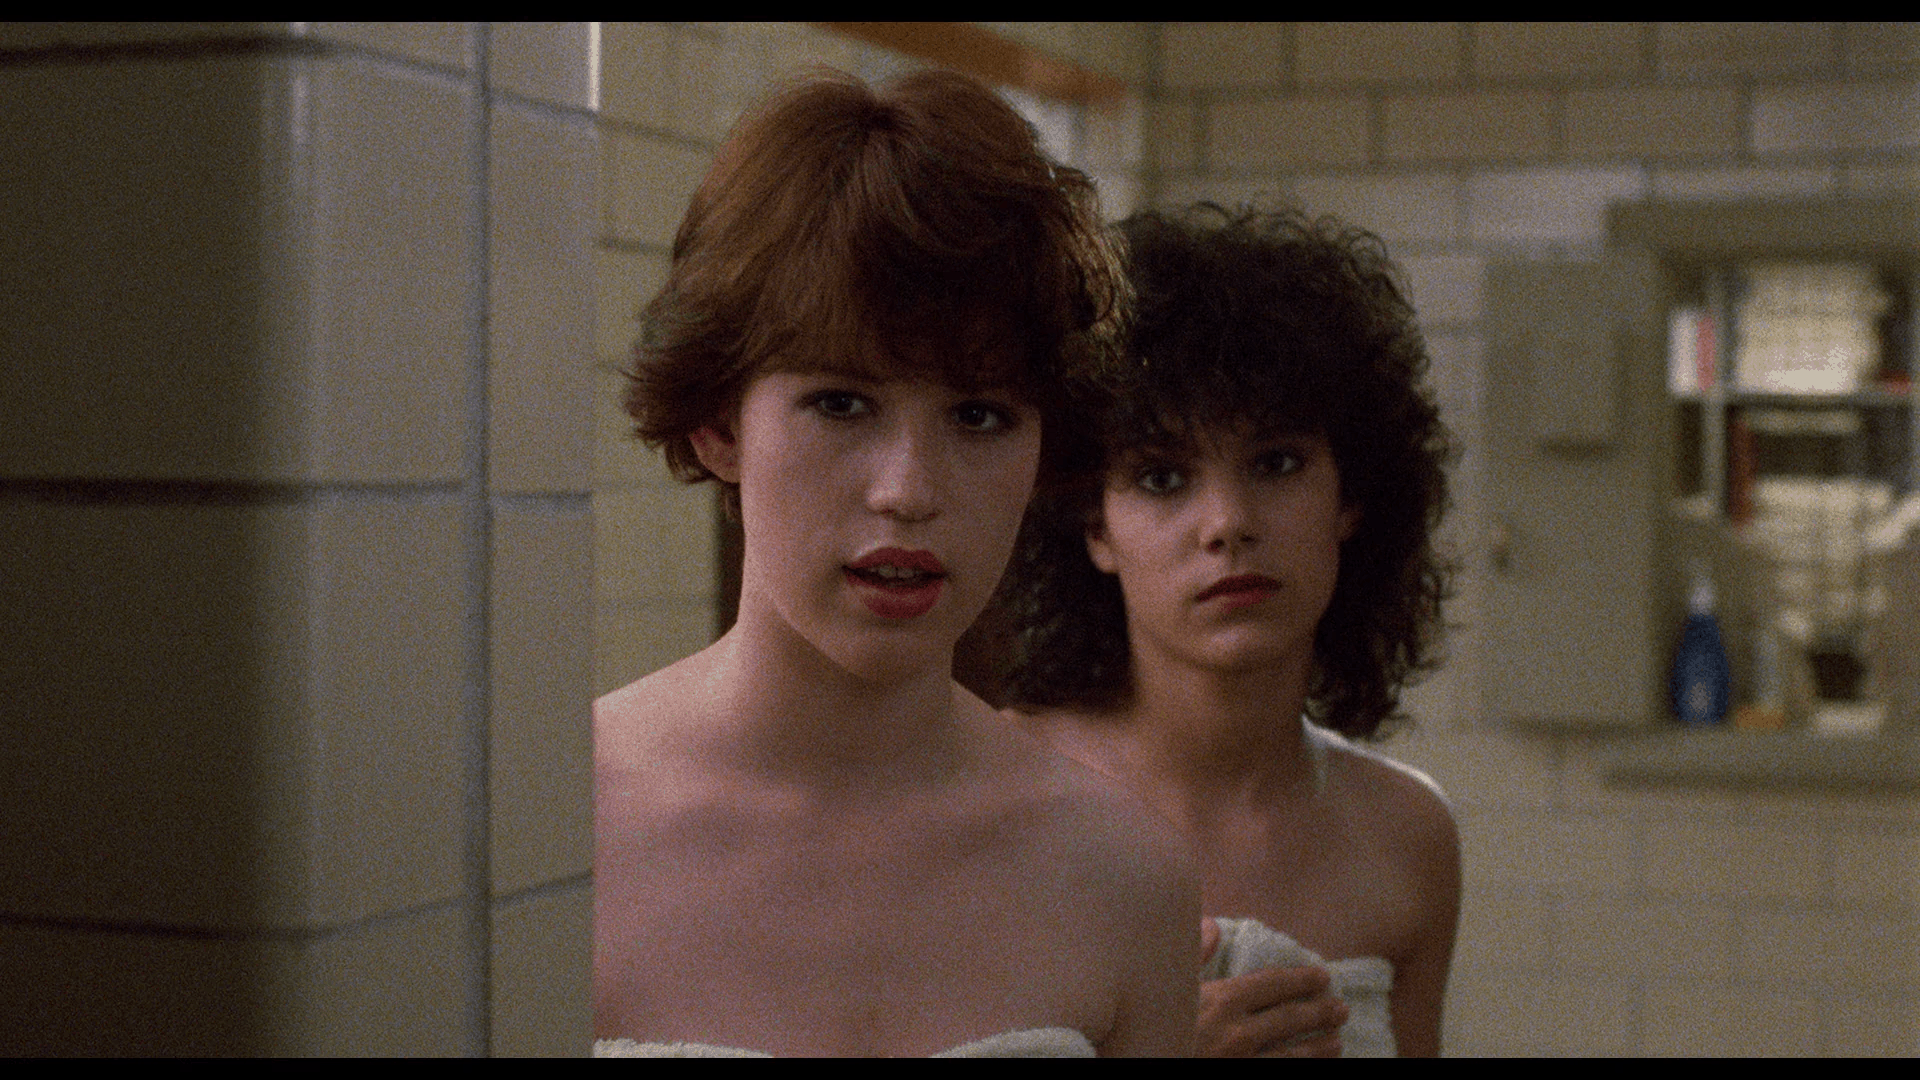 Local 12 year old discovers boobs in a PG movie: Sixteen Candles Arrow Blu-ray review 11